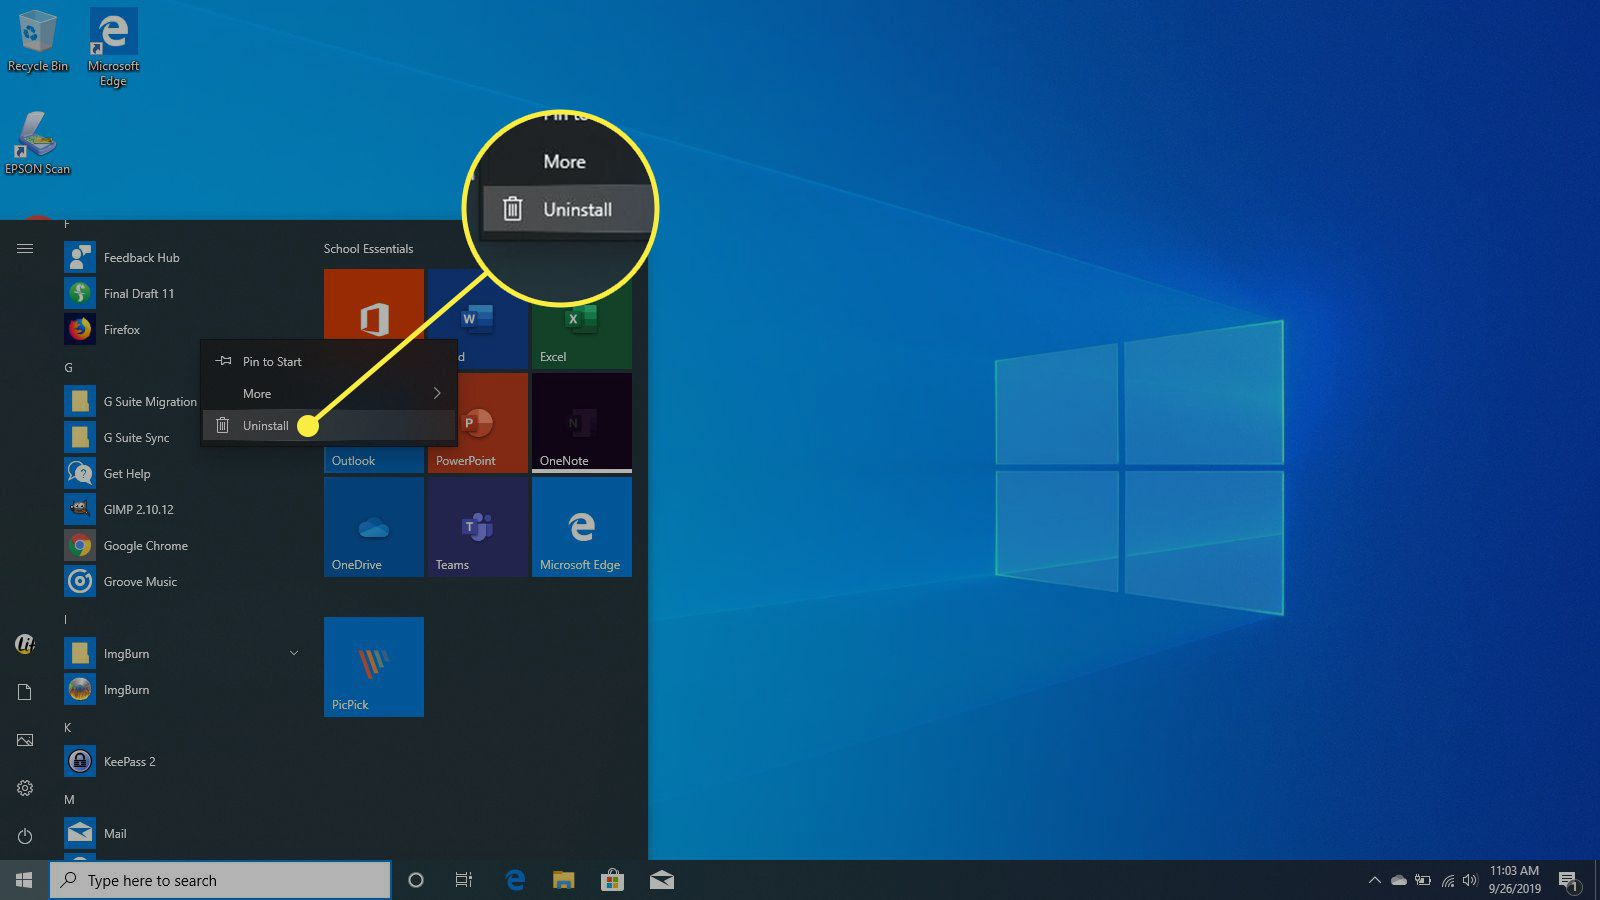 How to Uninstall Apps From Windows 7, 8, and 10